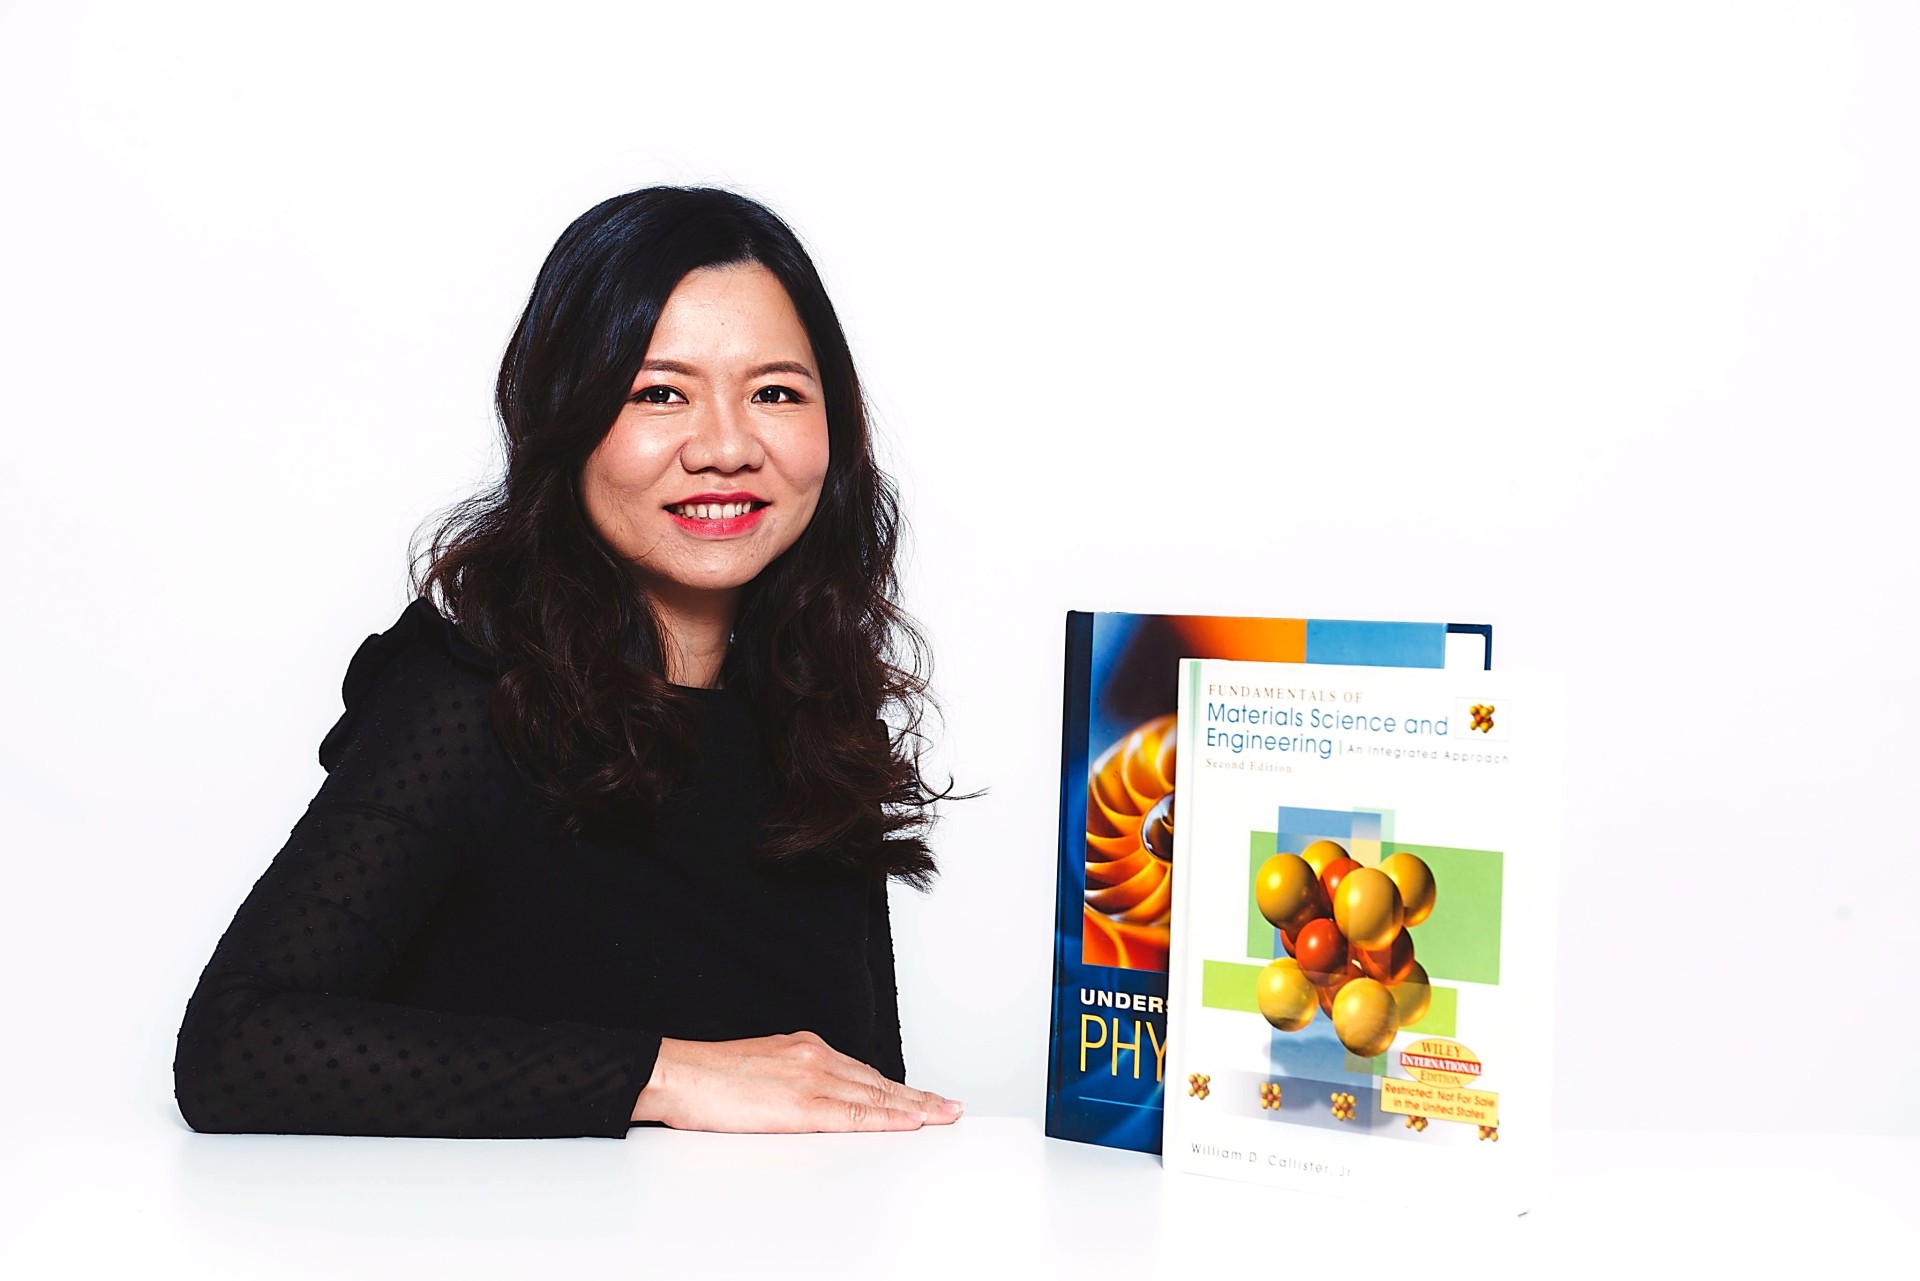 Winning this award tells the world that women scientists in Malaysia are brilliant, says Dr Lim. Photo: L'Oreal